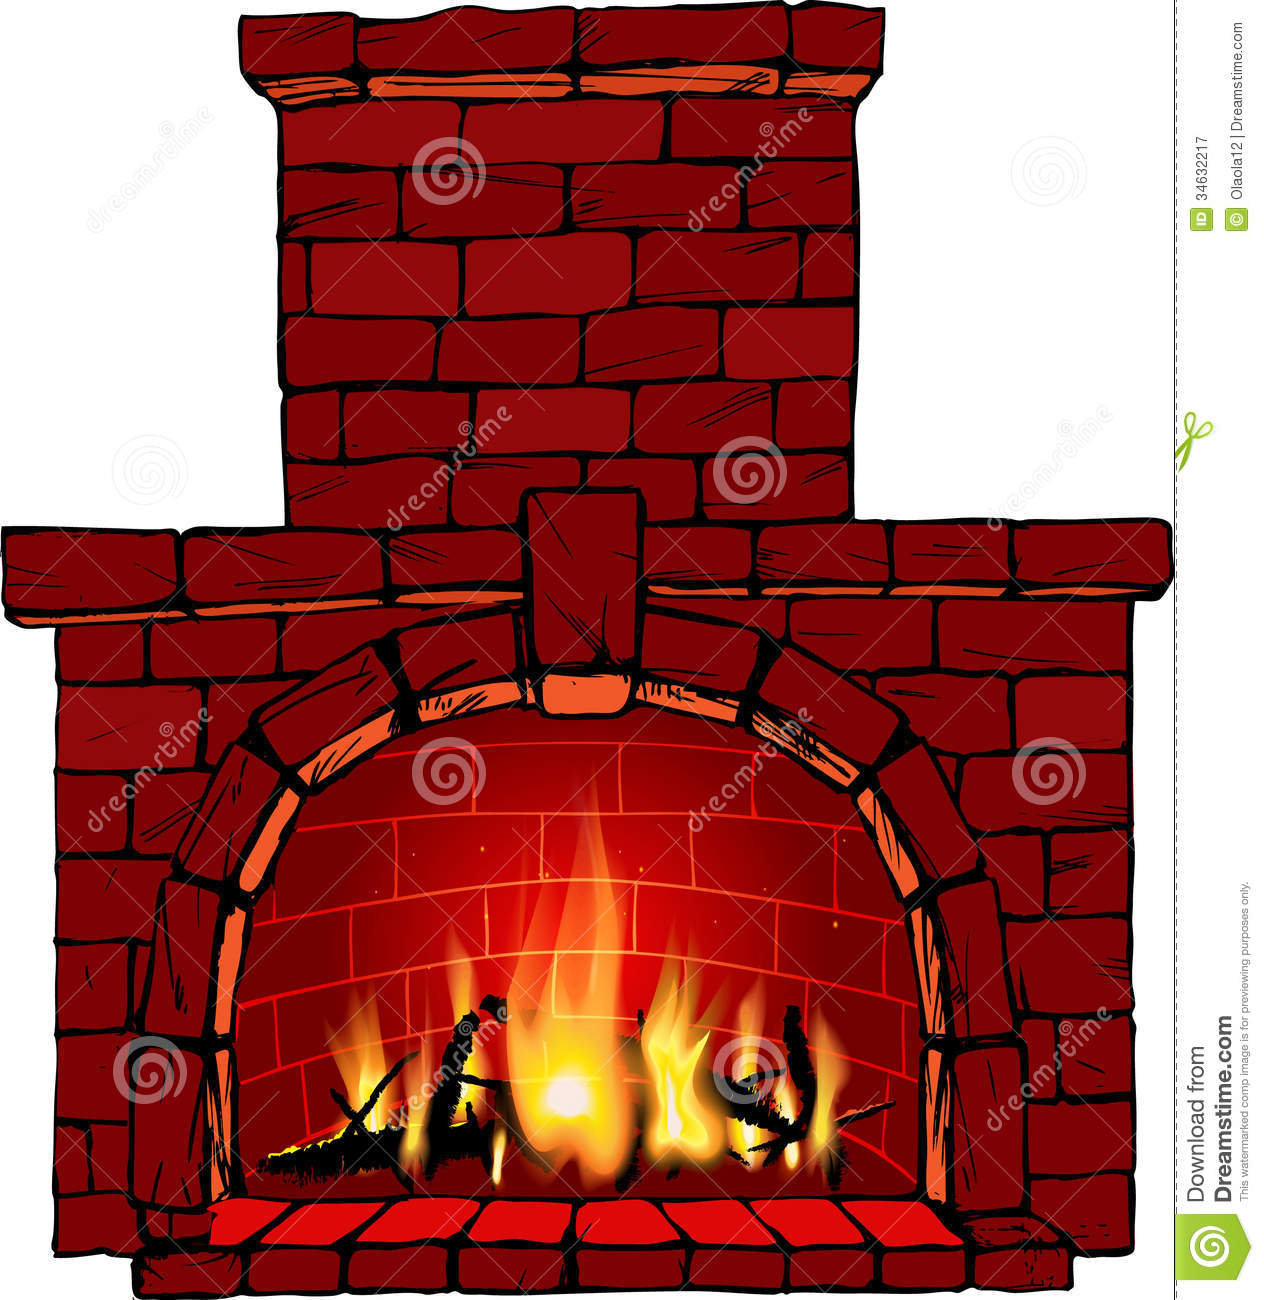 Fireplace Royalty Free Stock Photography-Fireplace Royalty Free Stock Photography Image 34632217-5